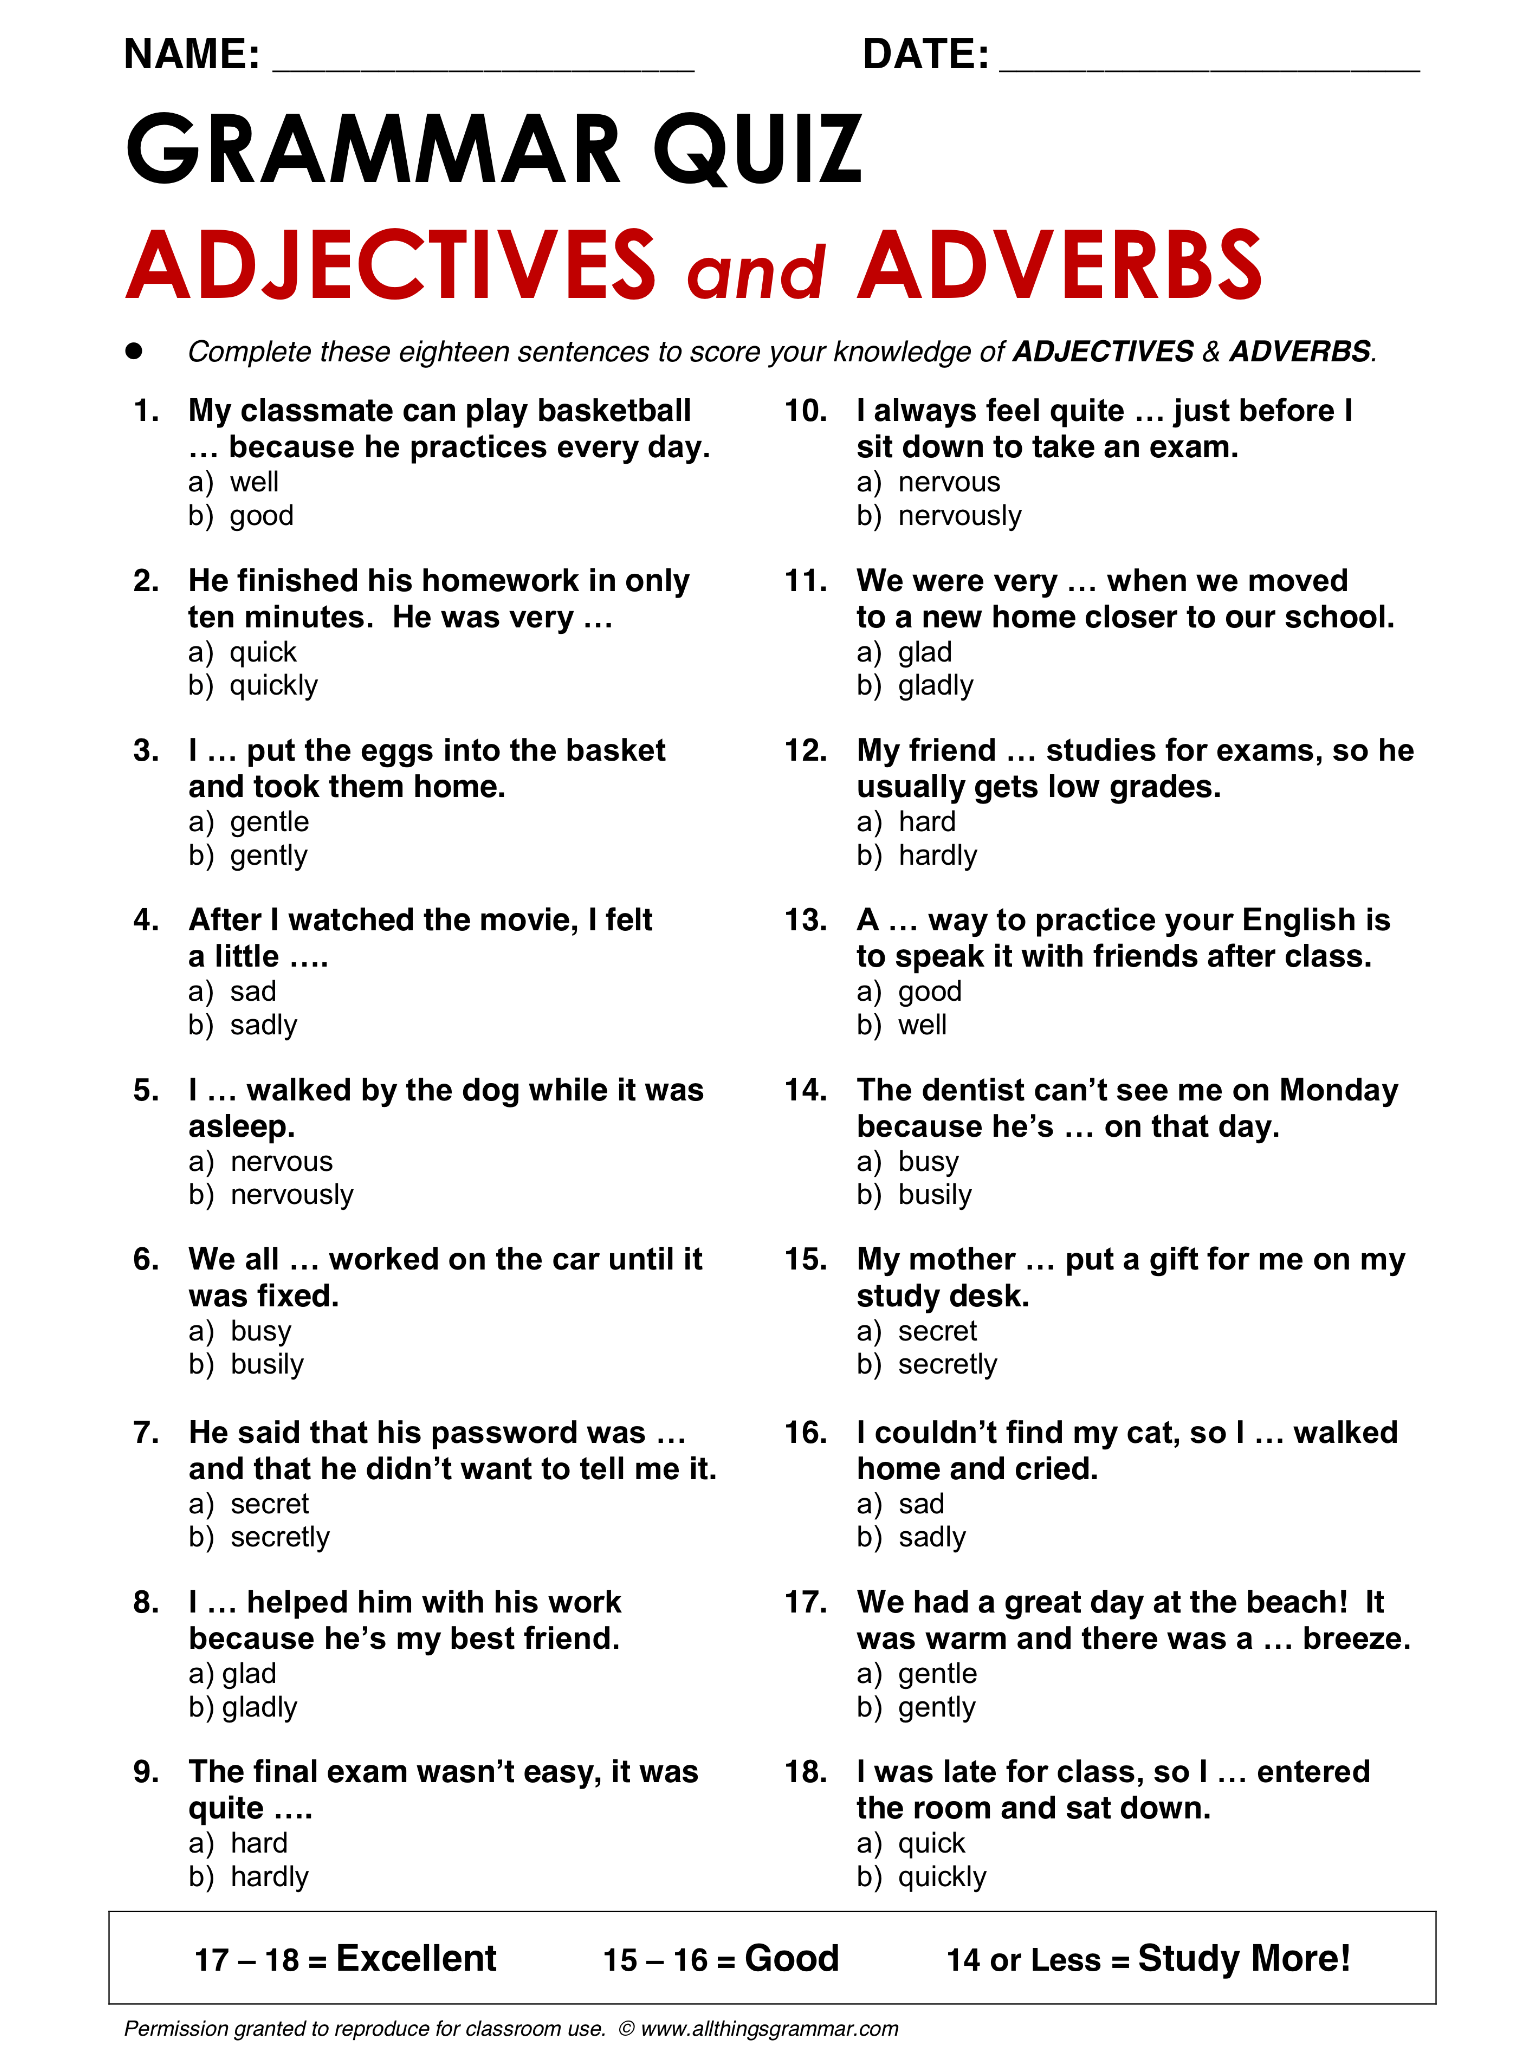 English Grammar Adjectives And Adverbs Lthingsgrammar Adjectives And Adverbs